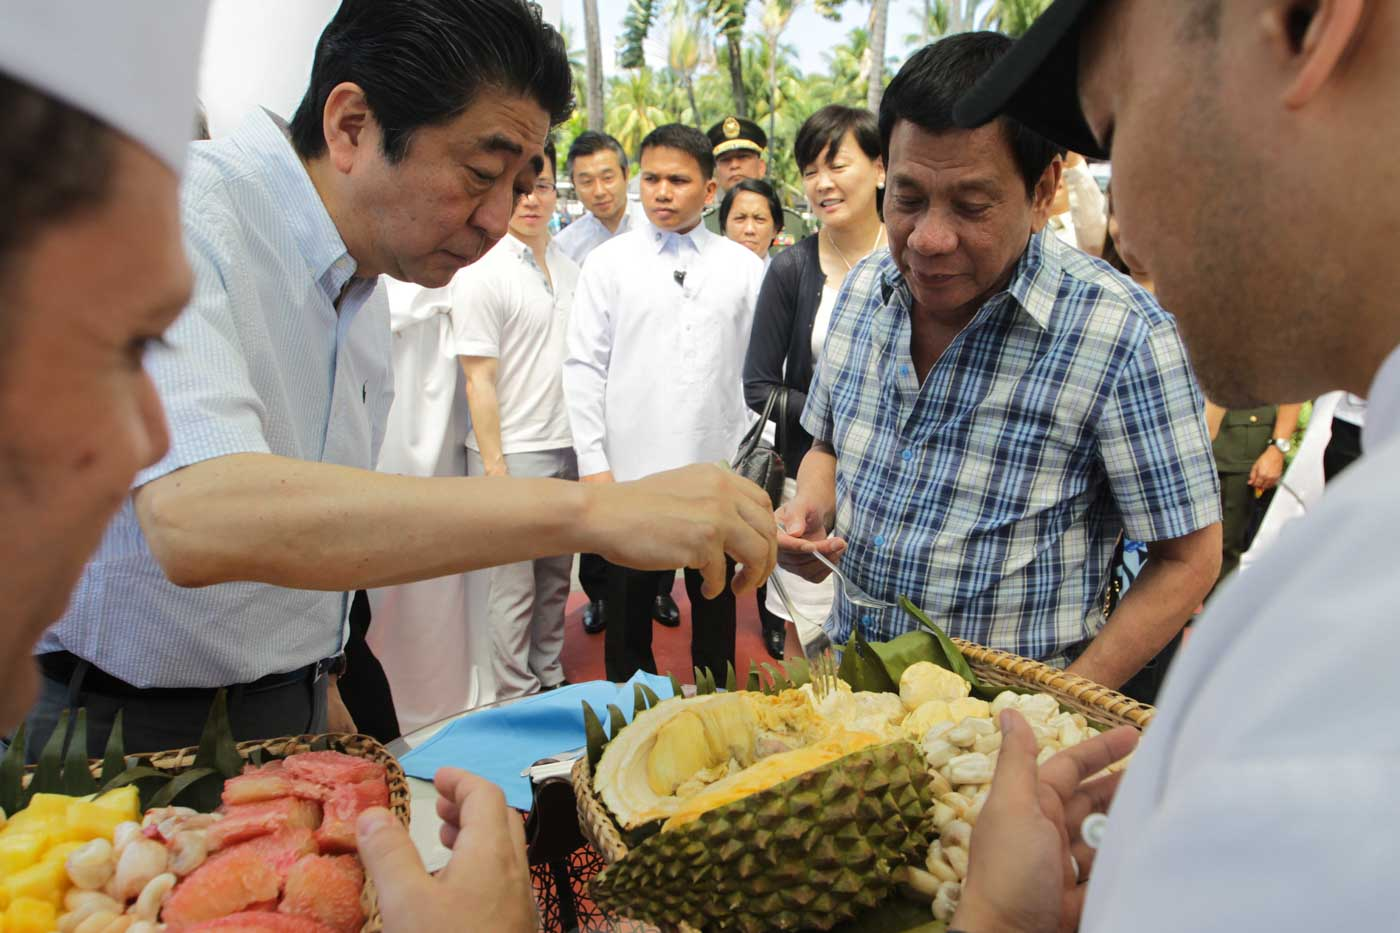 TASTE OF DAVAO. Japan Prime Minister Shinzo Abe eats durian fruit with President Rodrigo Duterte after attending various events at the Waterfront Hotel in Davao City on January 13, 2017. Photo by Simeon Celi, Jr./PPD